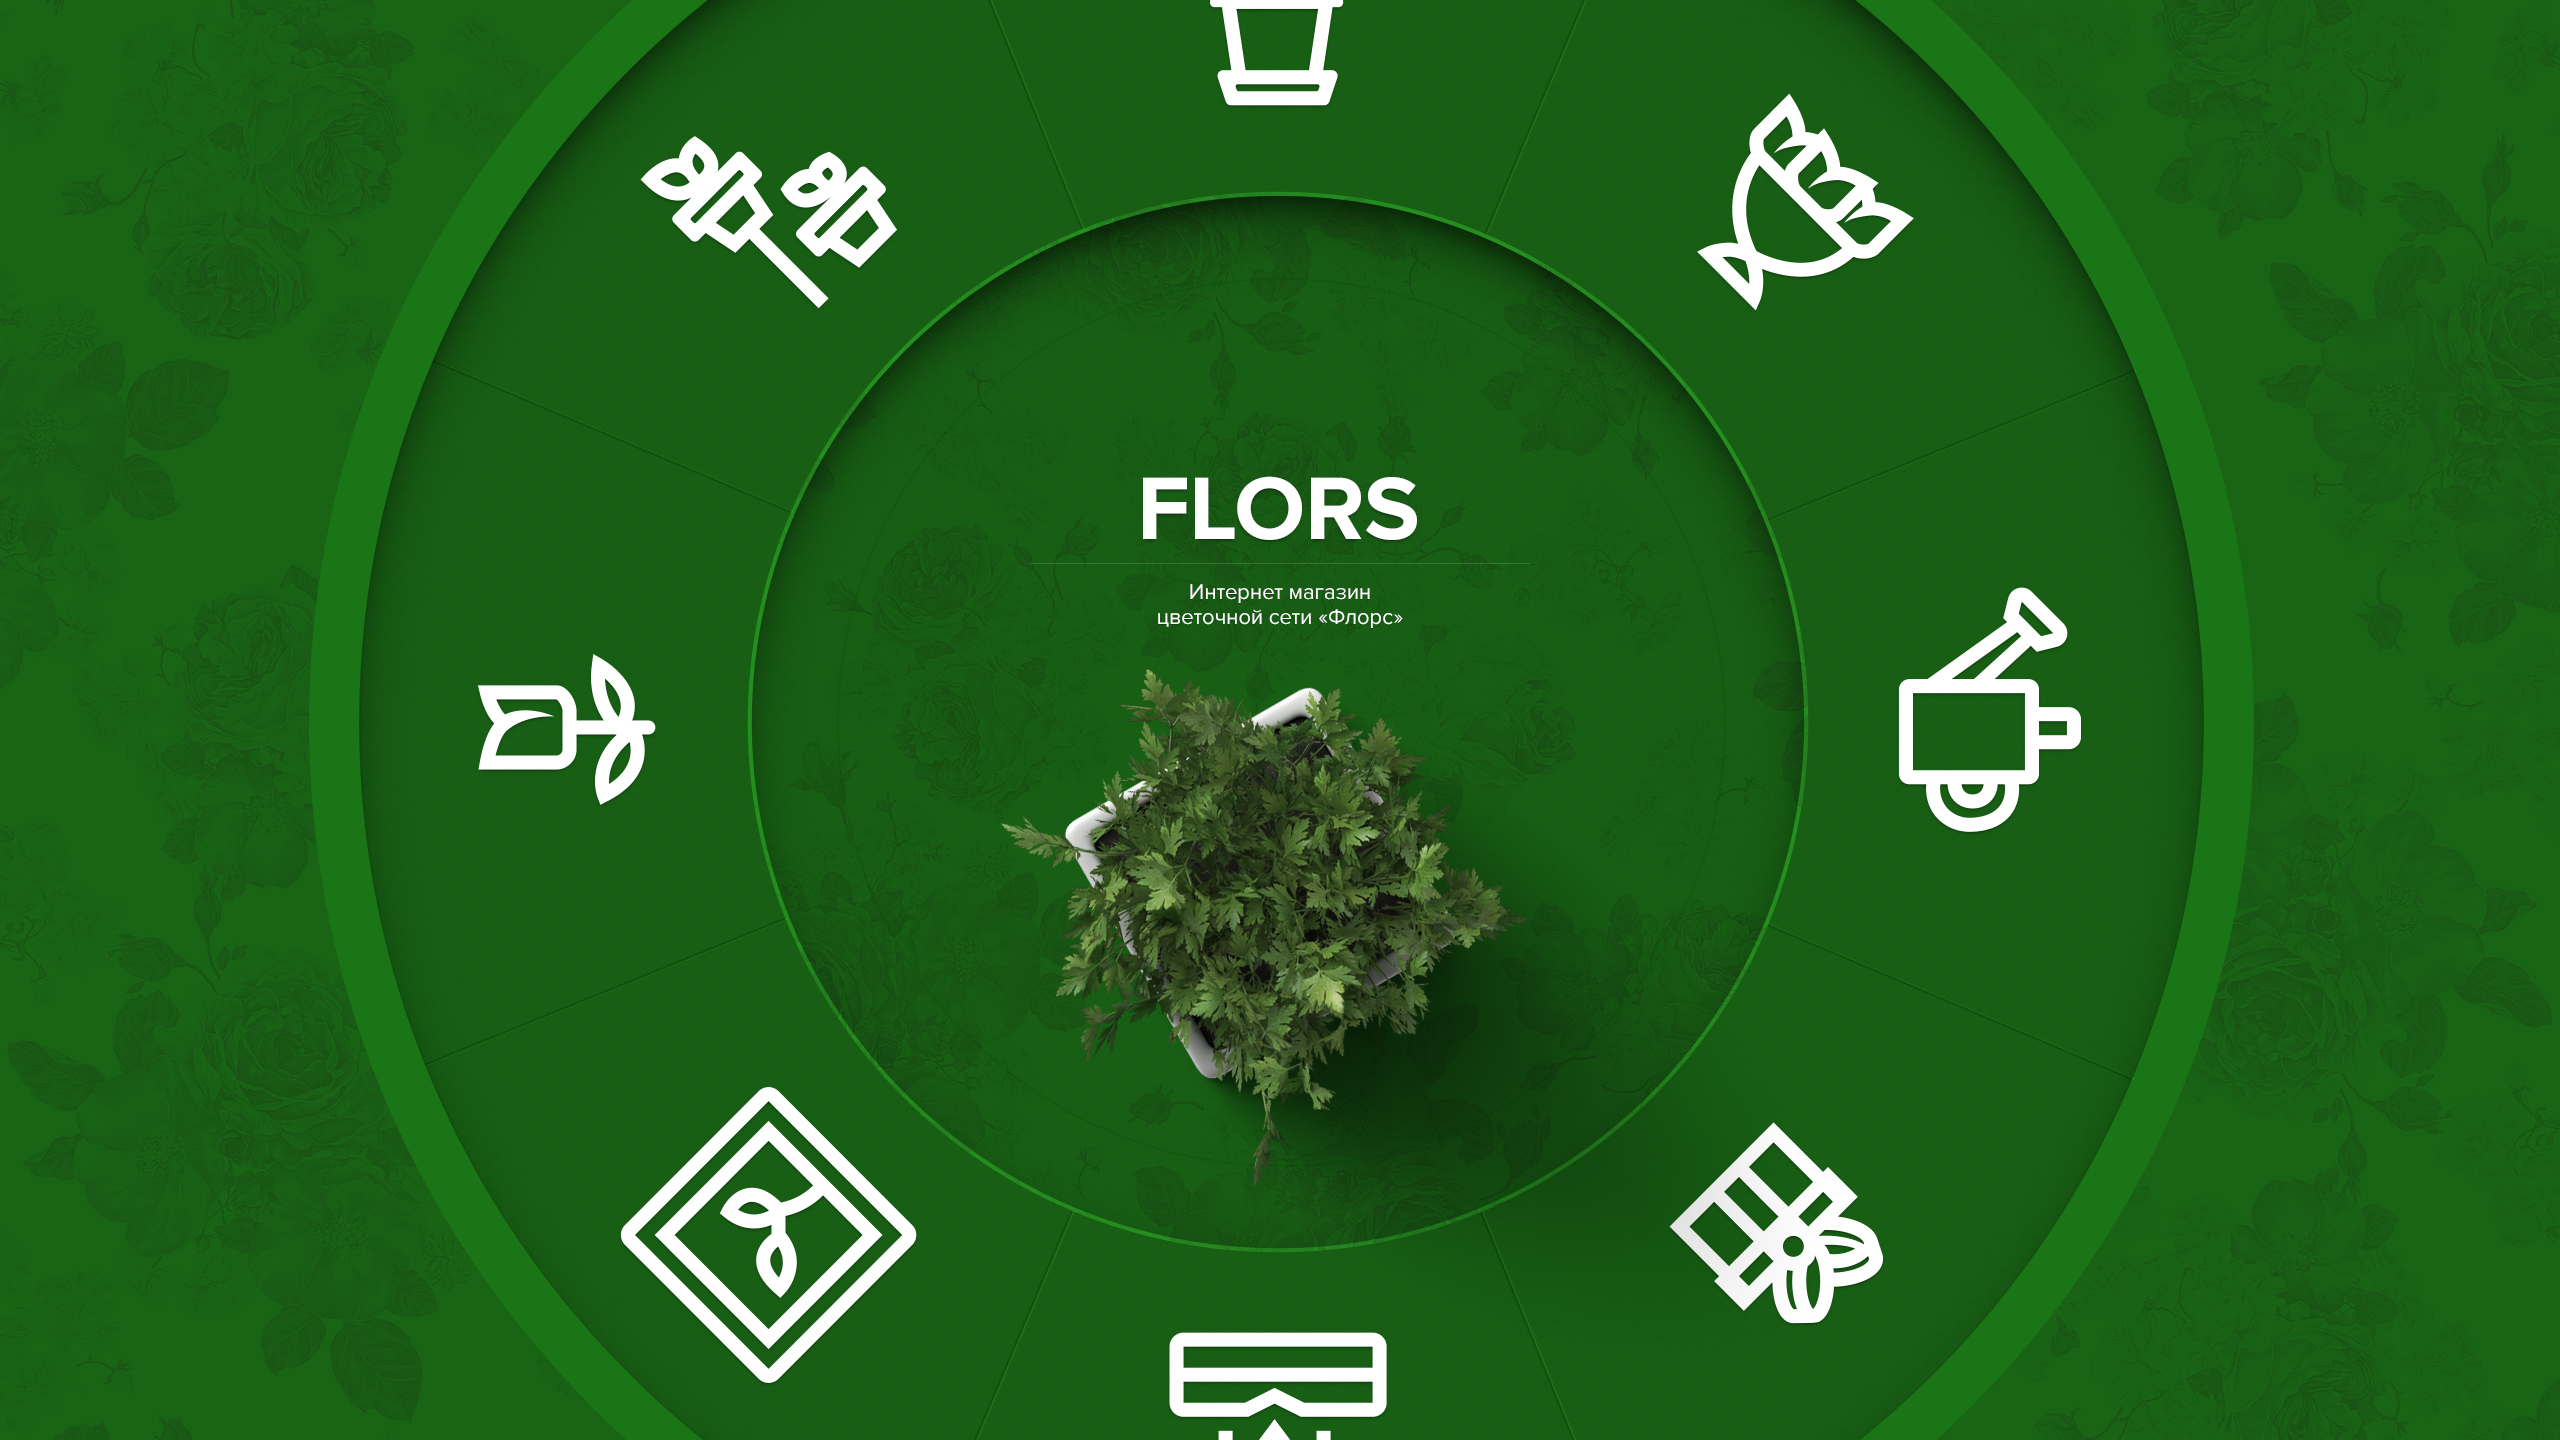 Flors cover